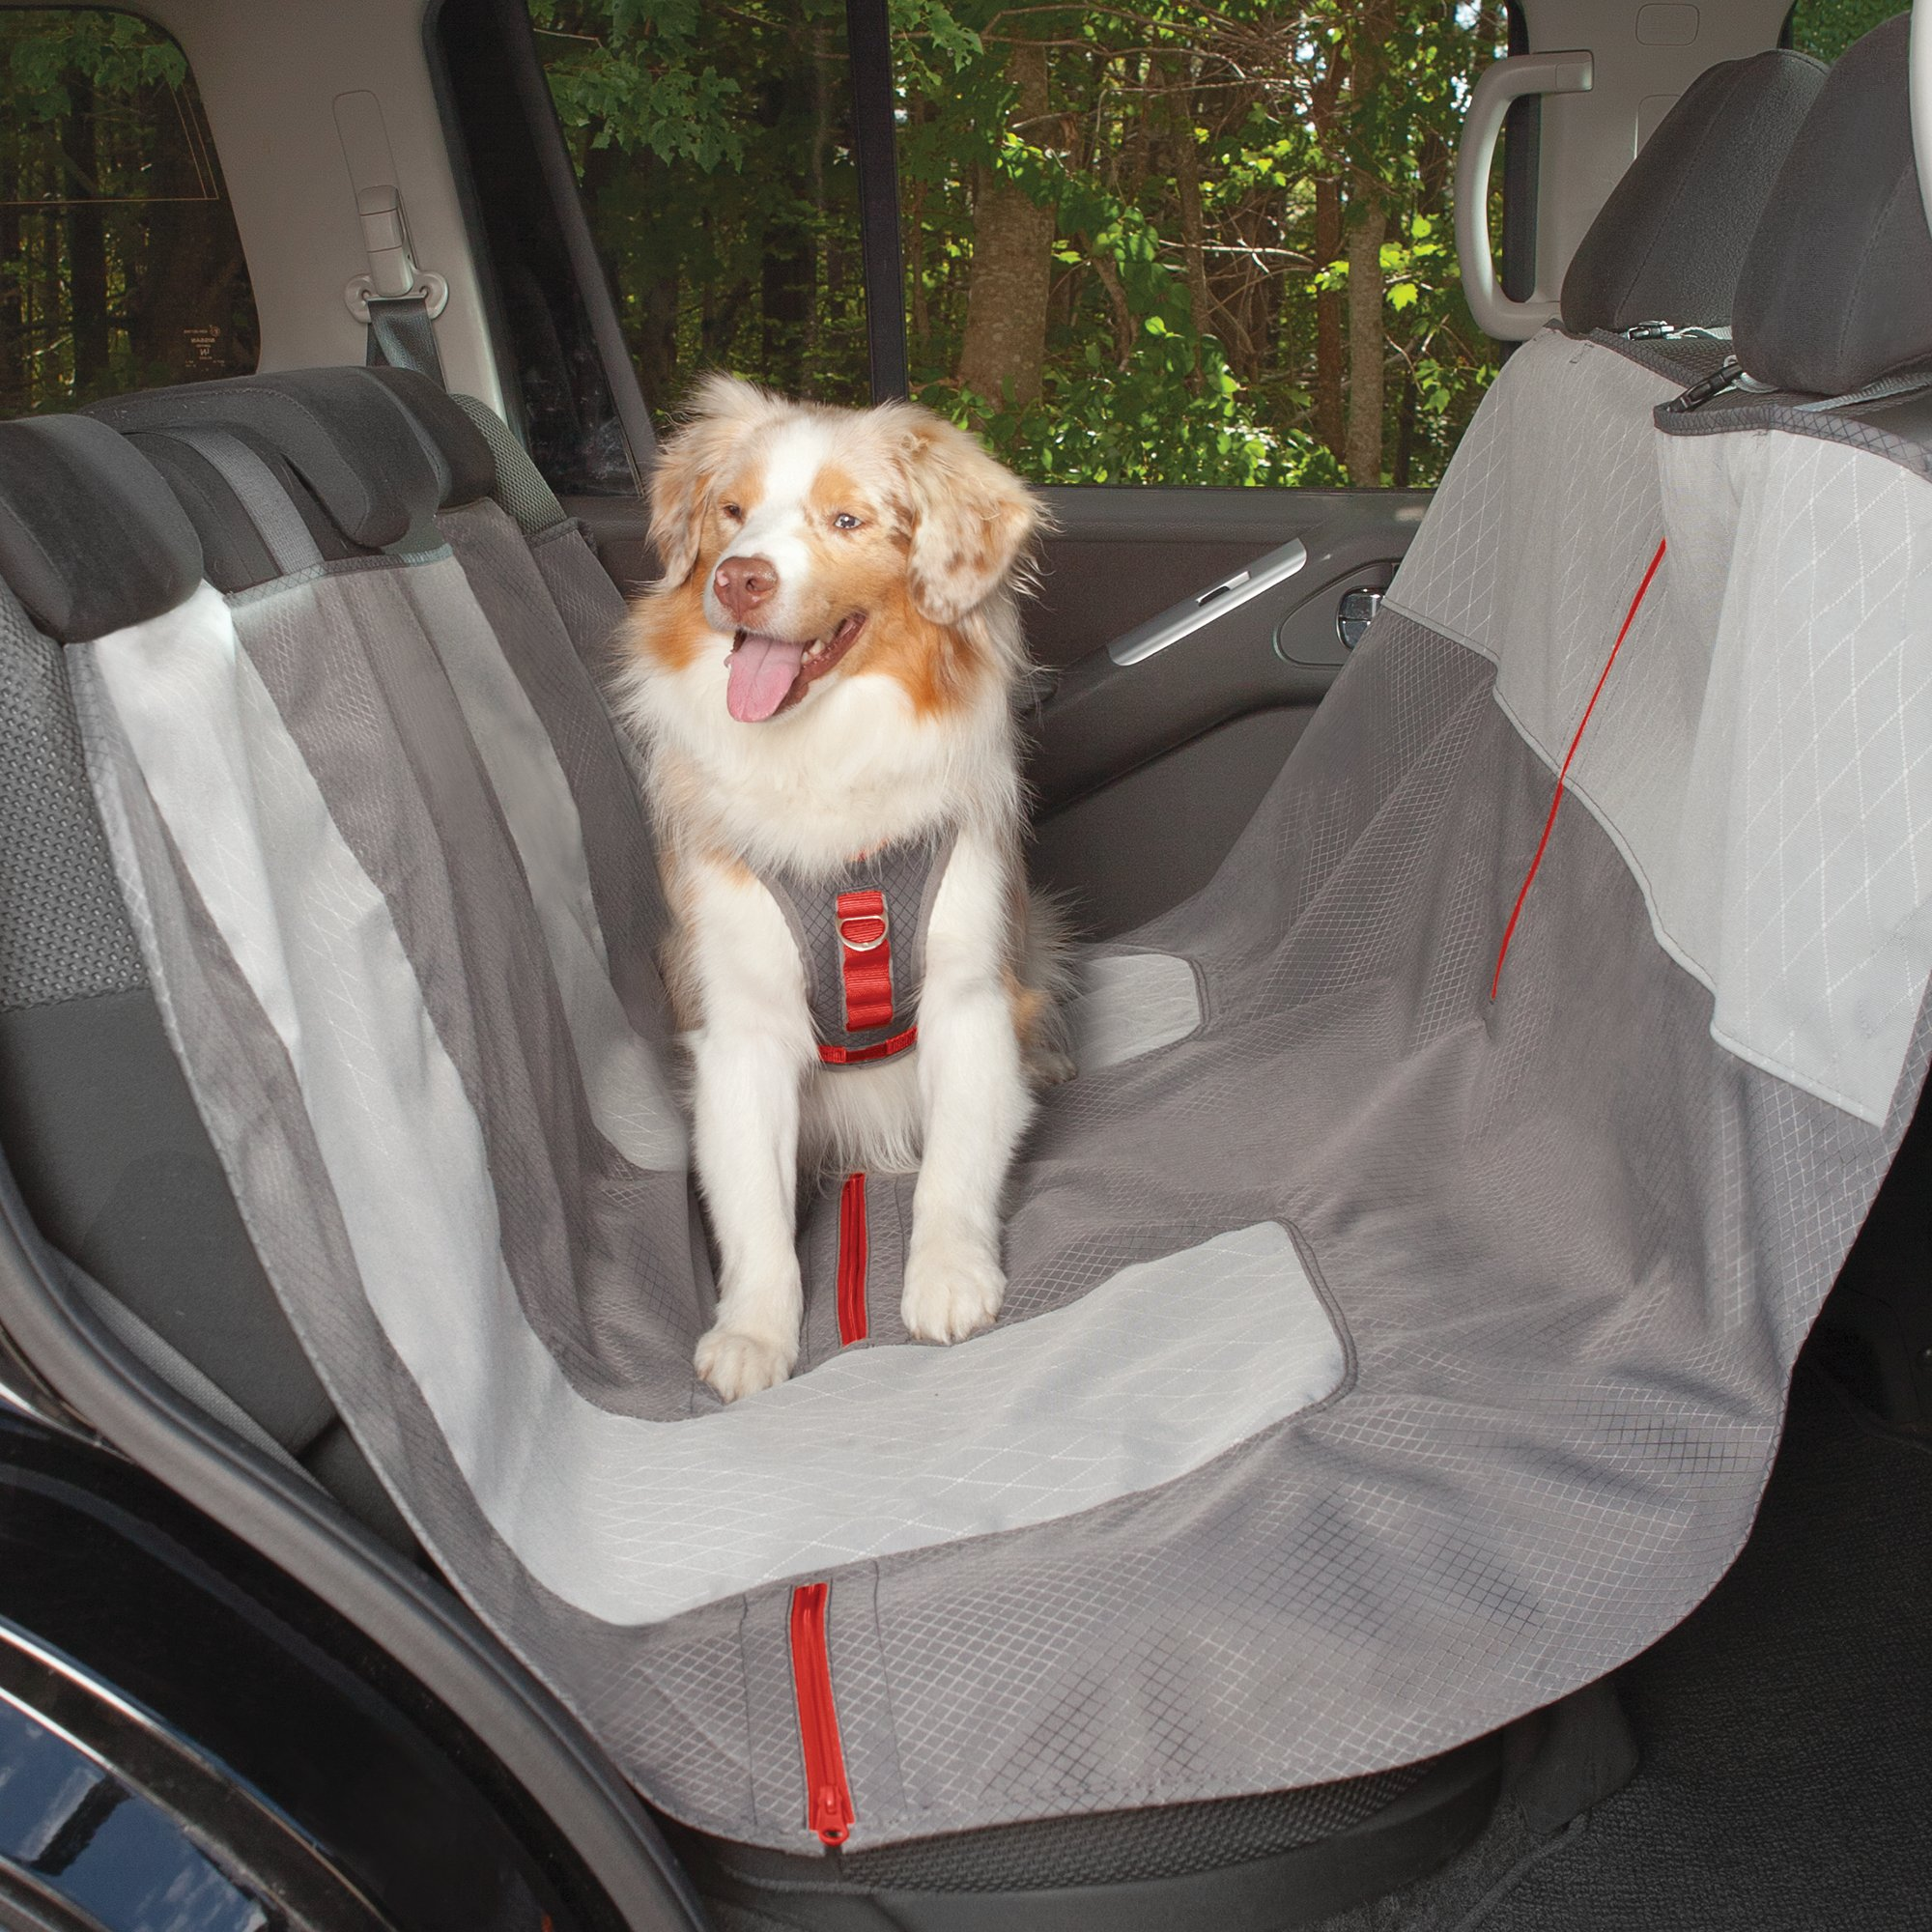 Kurgo Black Wander Hammock Dog Car Seat Cover  Home Middot Car Seat Covers. Kurgo Loft Dog Hammock Seat Cover   Hammock